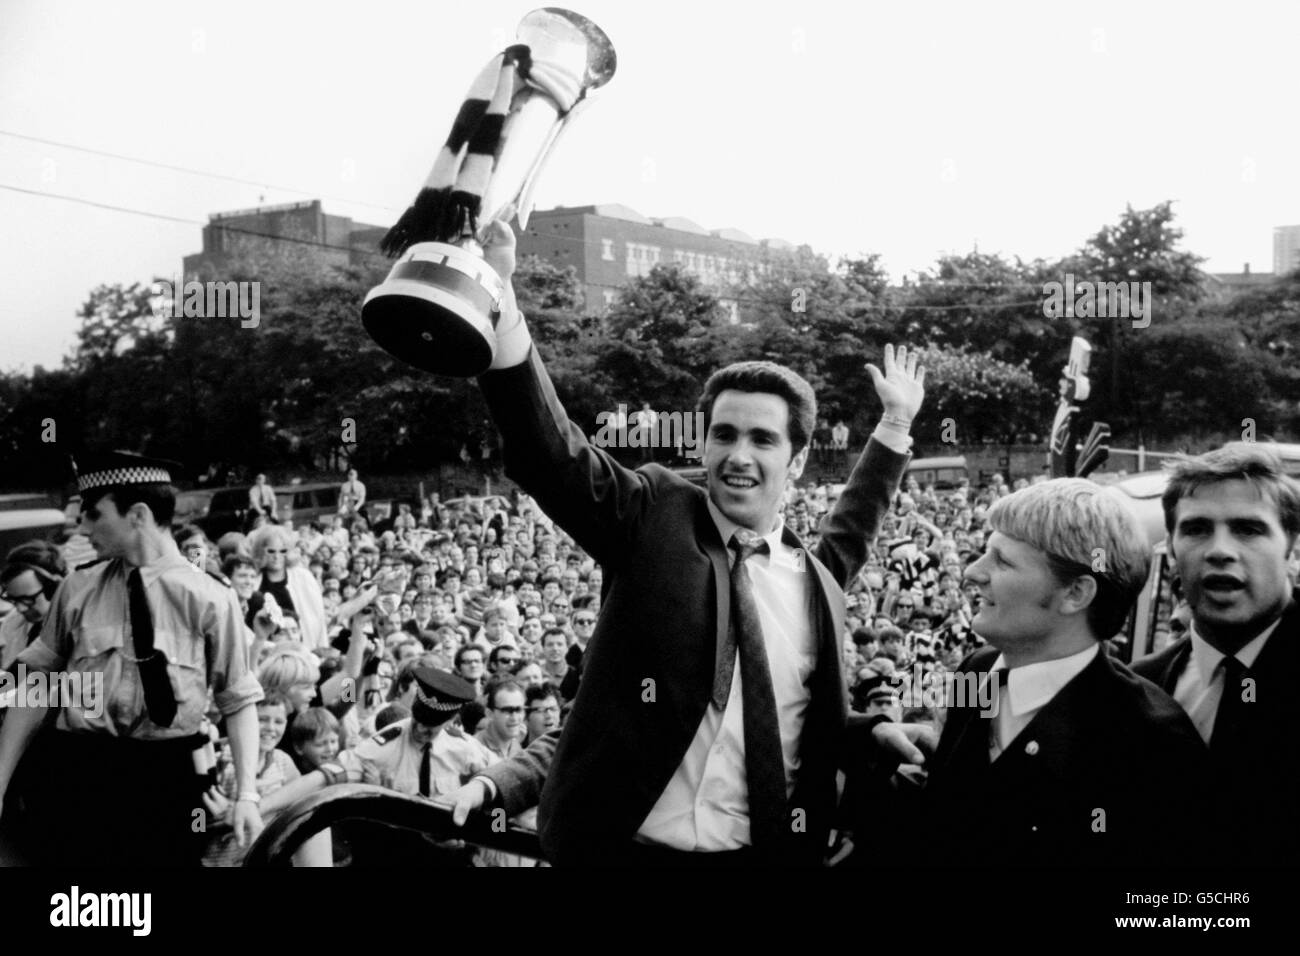 Soccer - Newcastle United Parade The Inter-Cities Fairs Cup - Stock Image